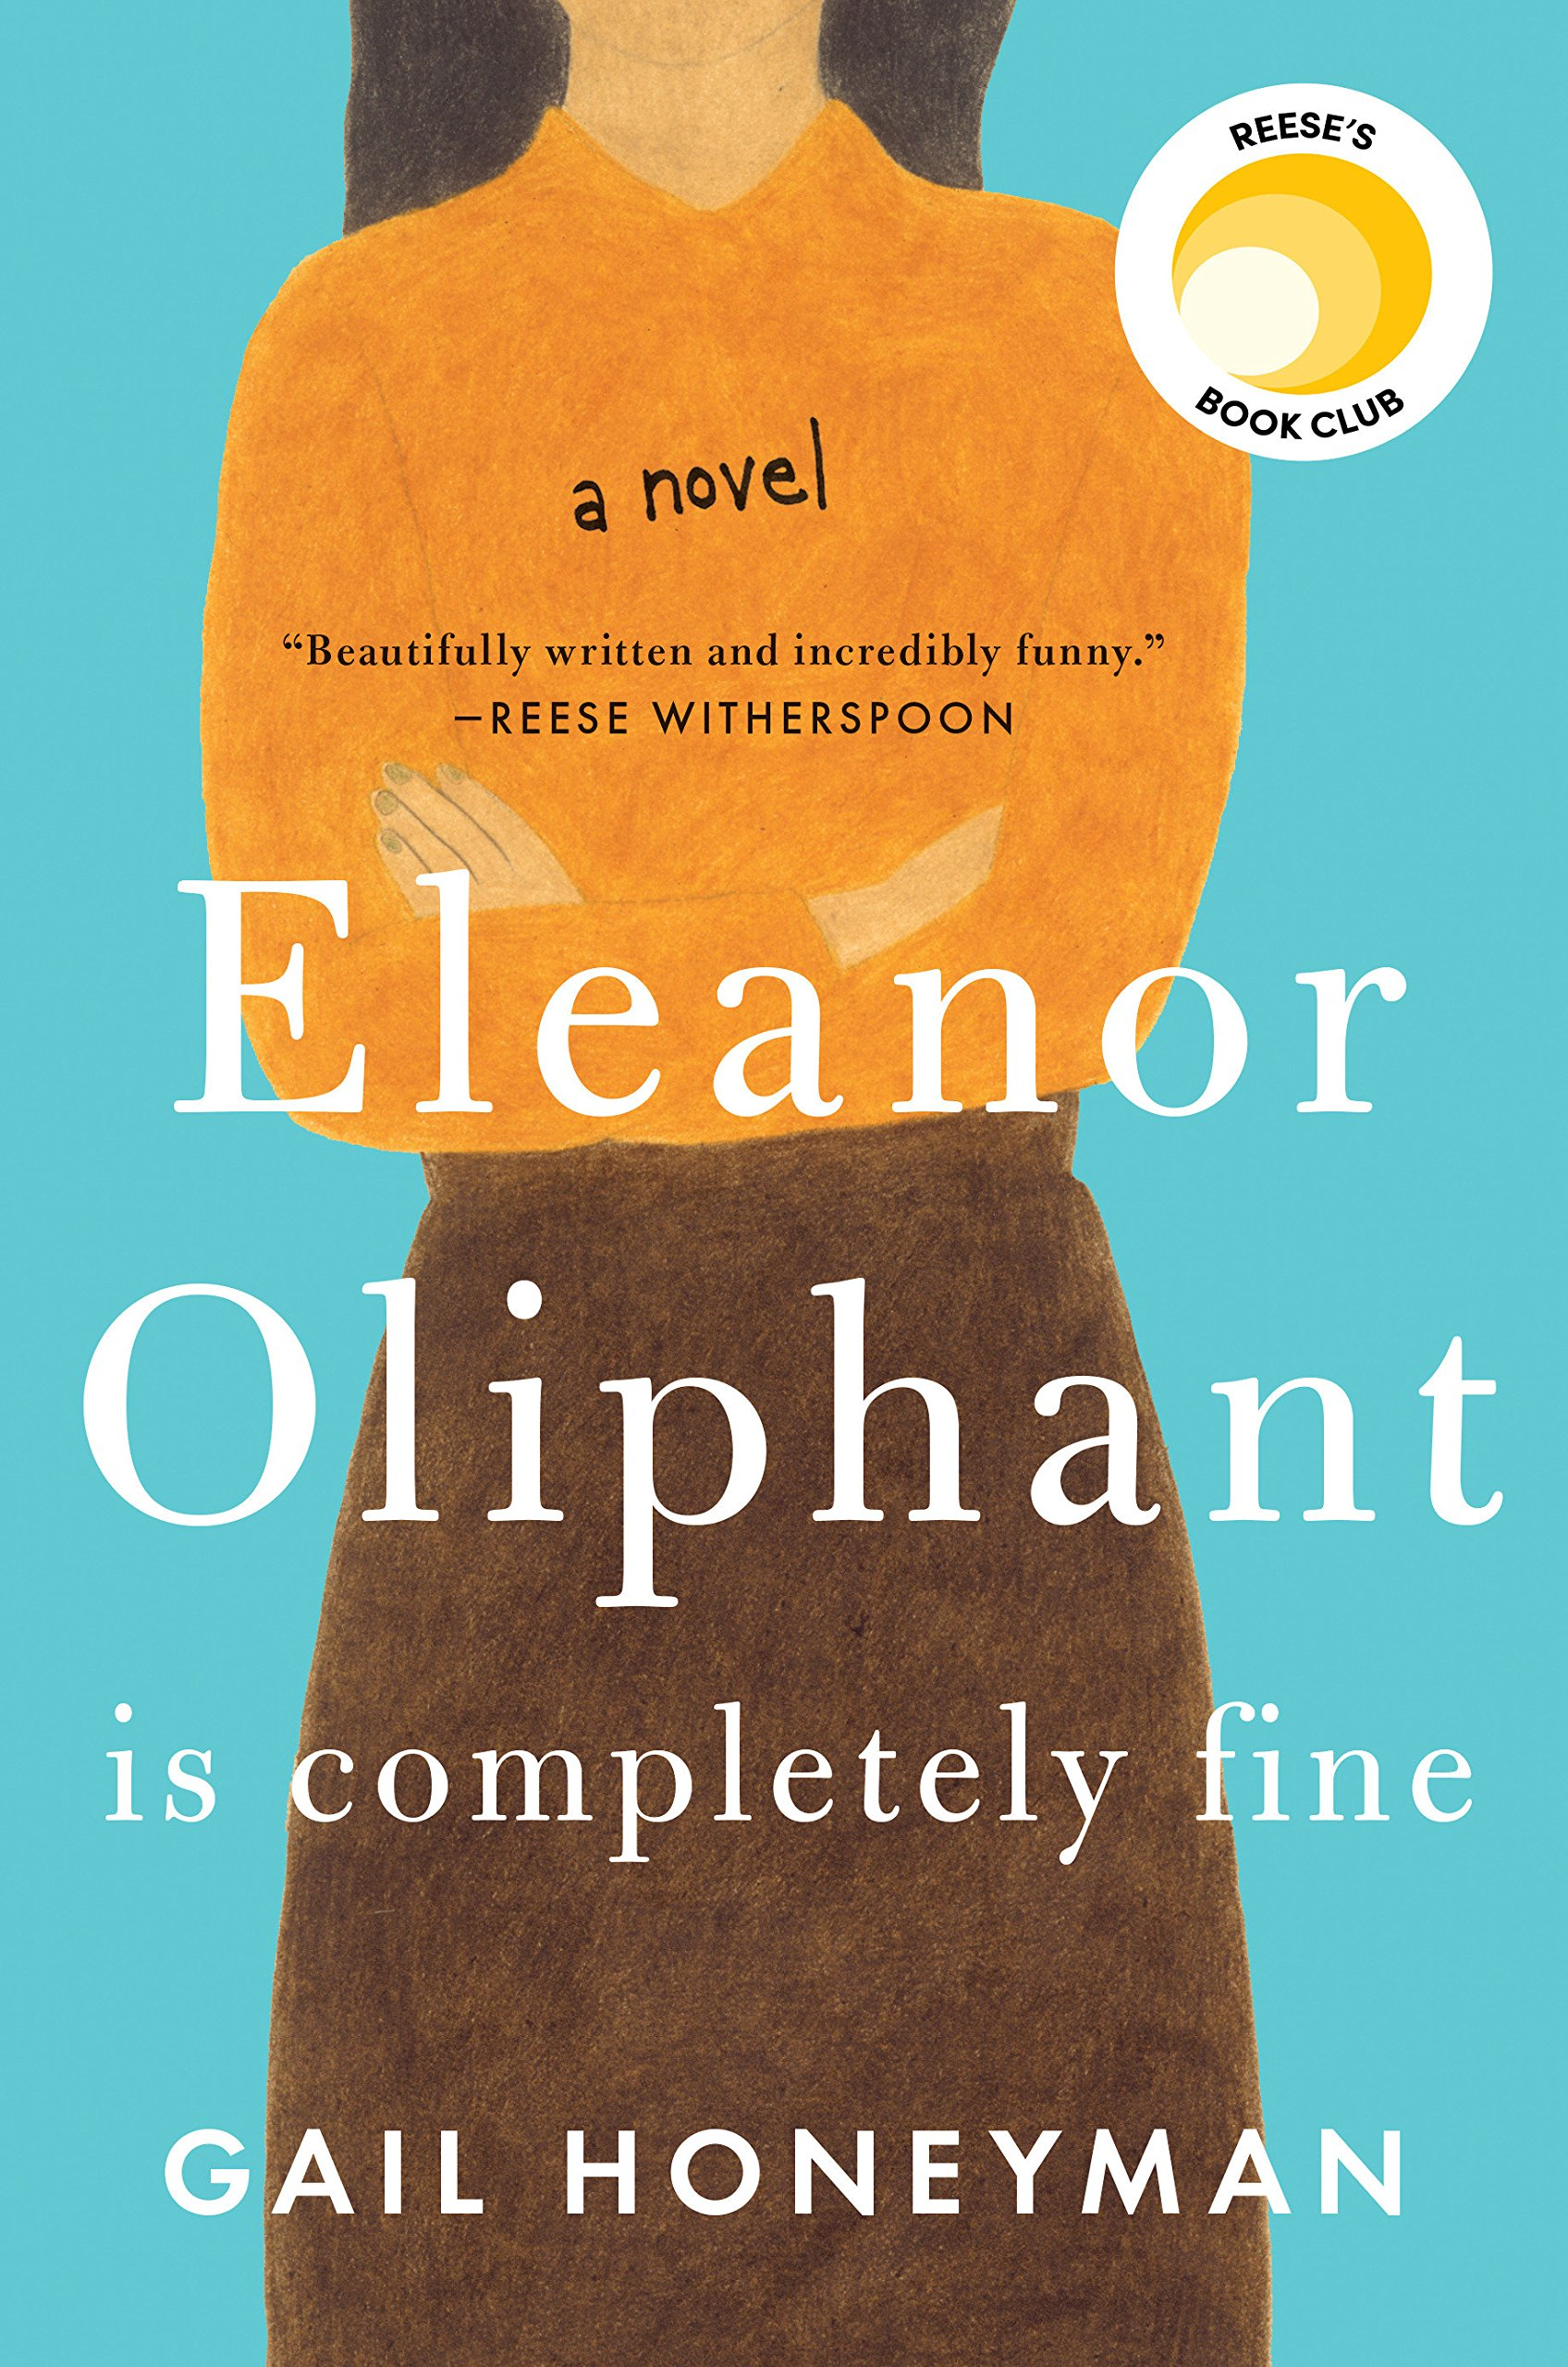 Coalville Book Club (Eleanor Oliphant is Completely Fine)